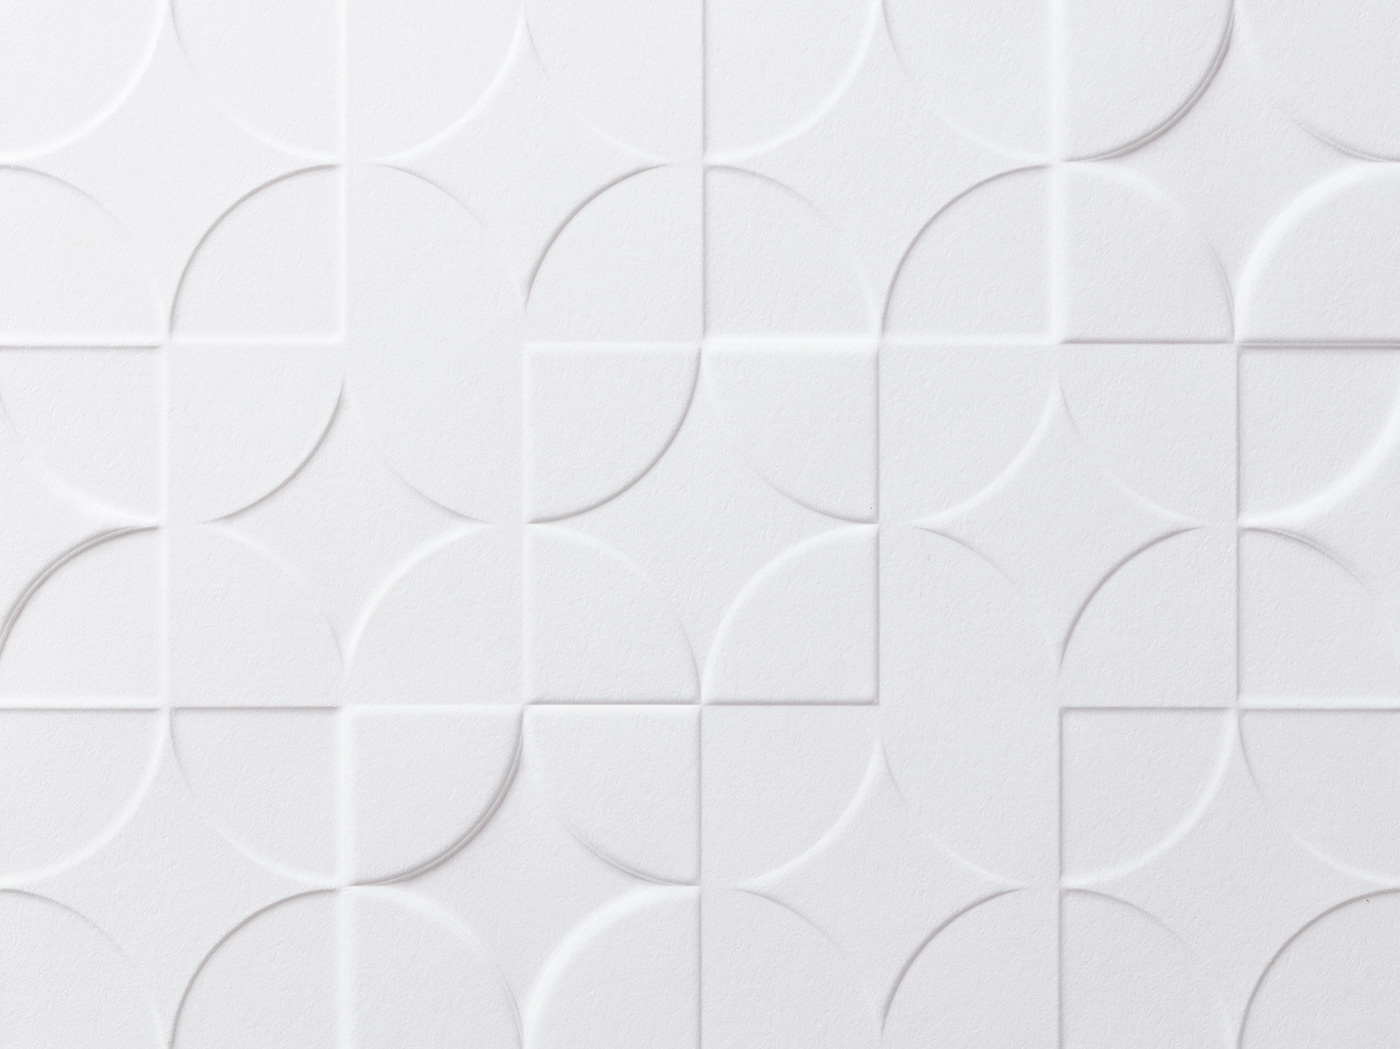 Embossed and debossed patterns